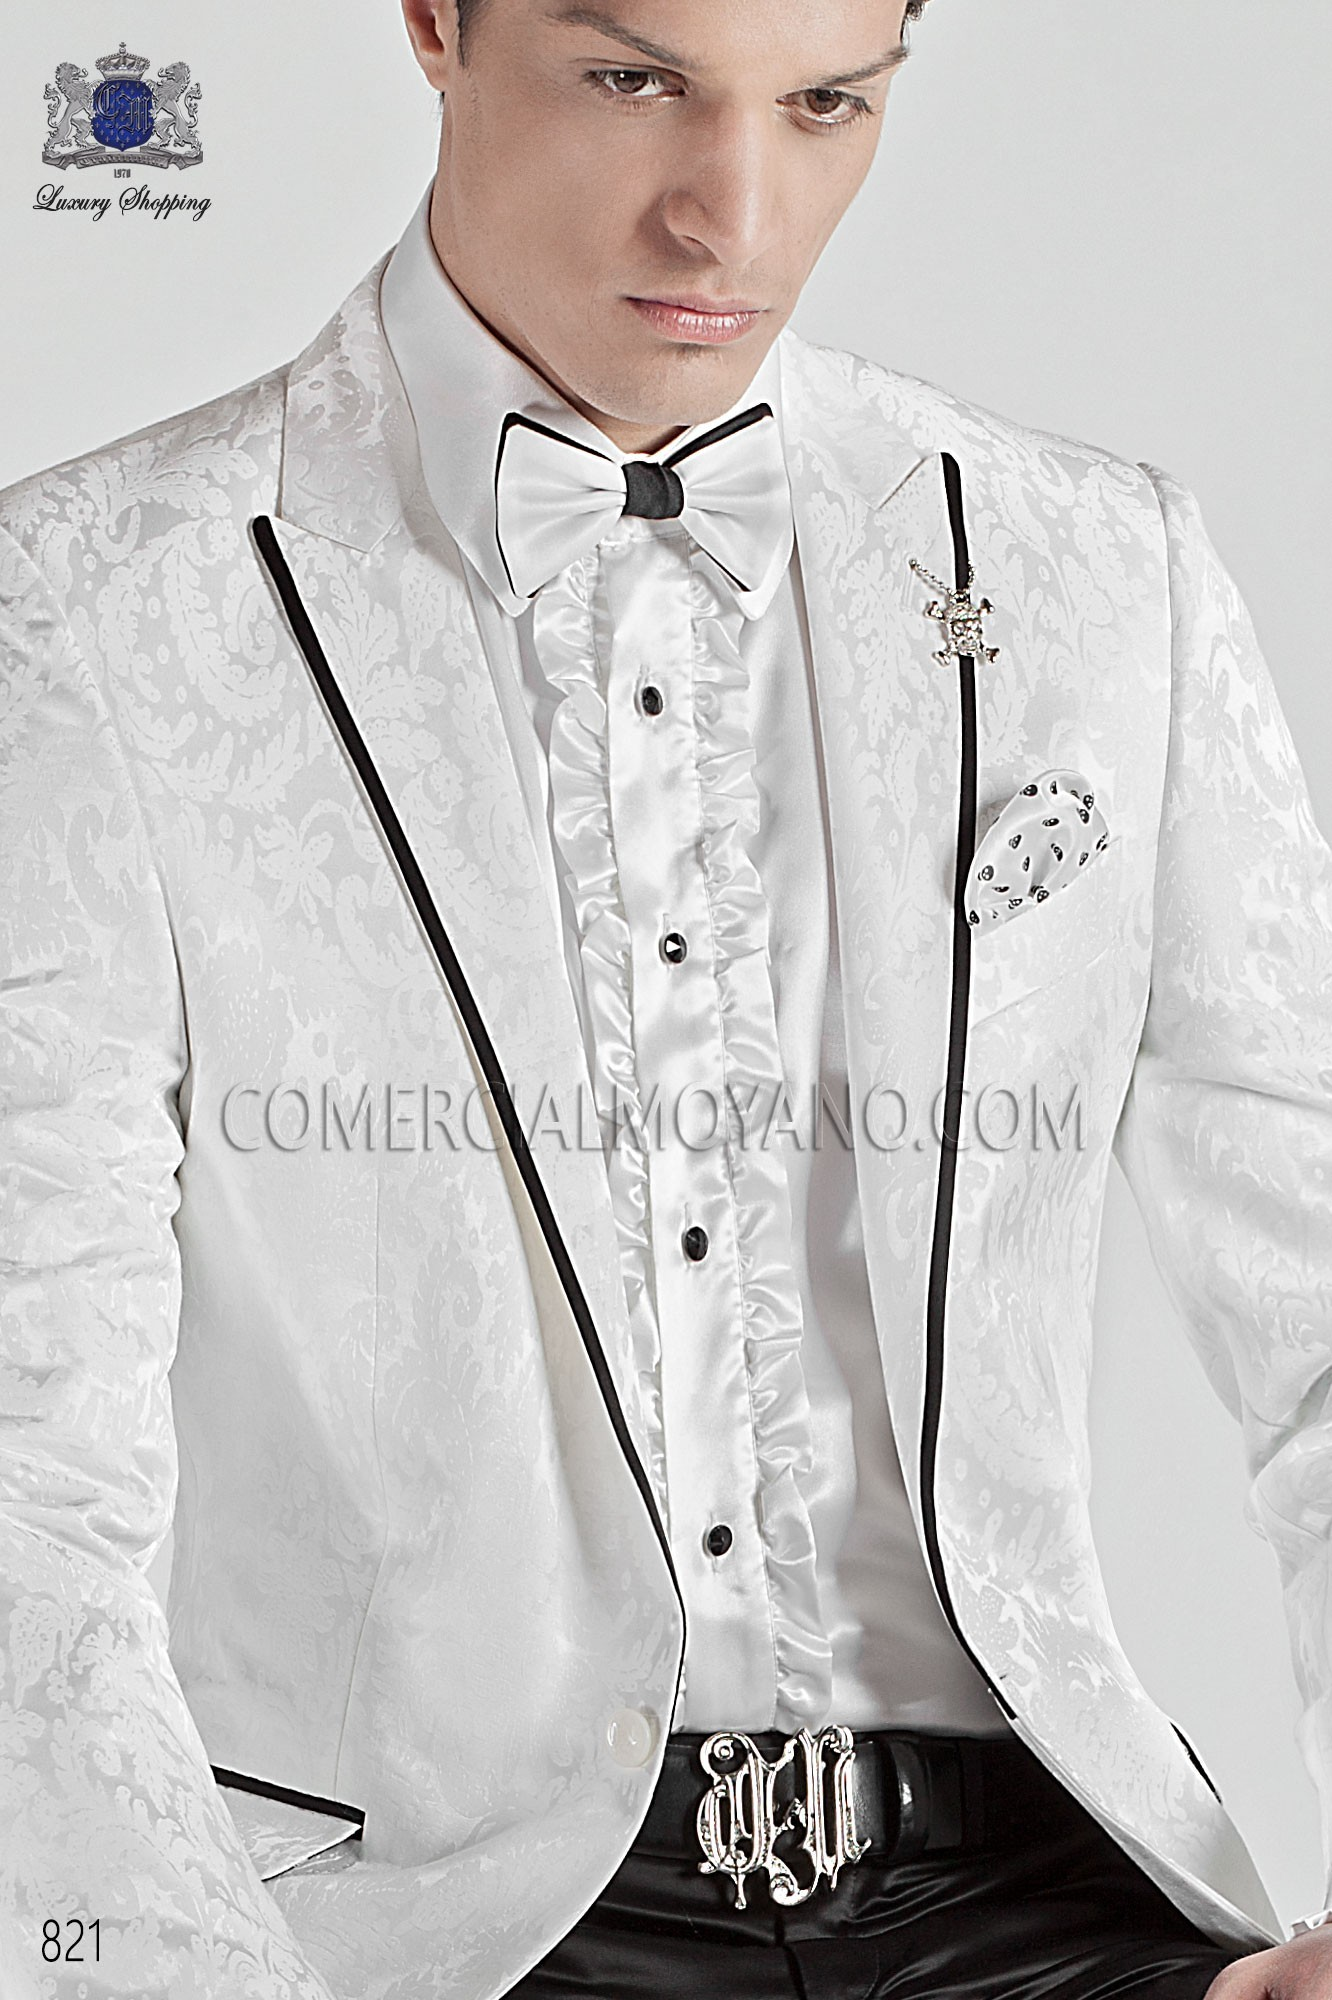 Italian emotion white men wedding suit, model: 821 Ottavio Nuccio Gala Emotion Collection